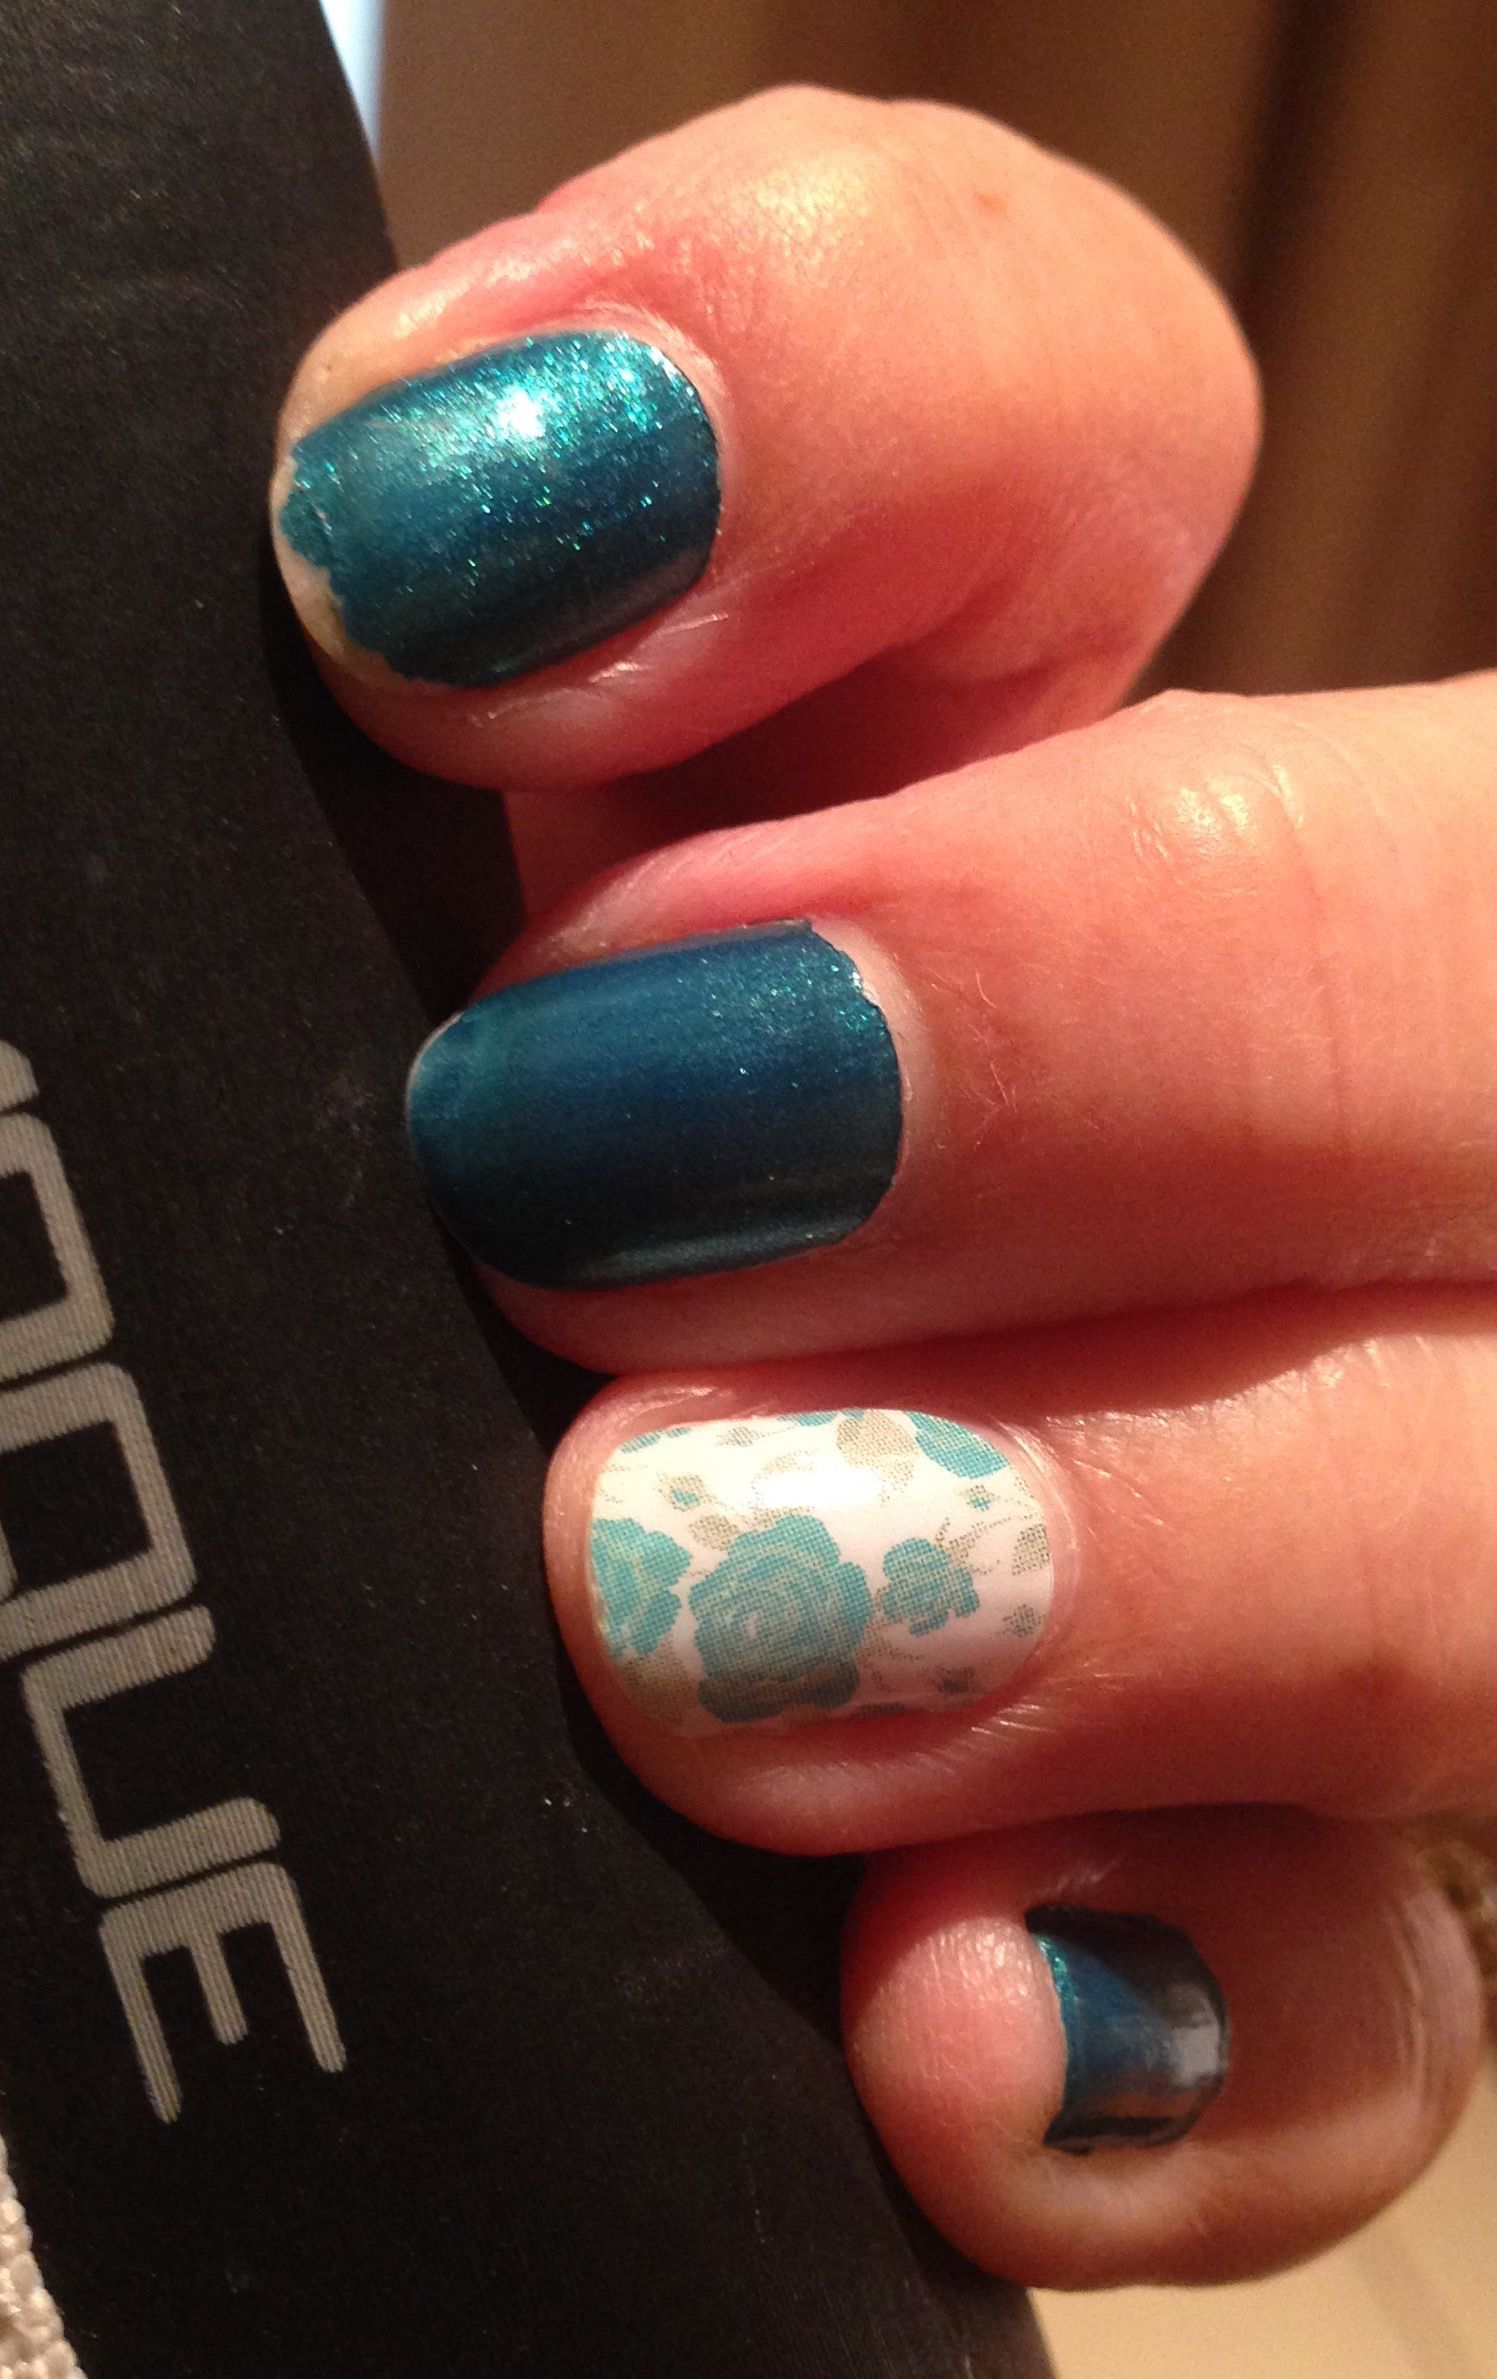 Look at that, after only 3 days my polish is starting to wear but my Jamberry nail wrap is perfect #jamberryblisswithnarelle #lovejamberry